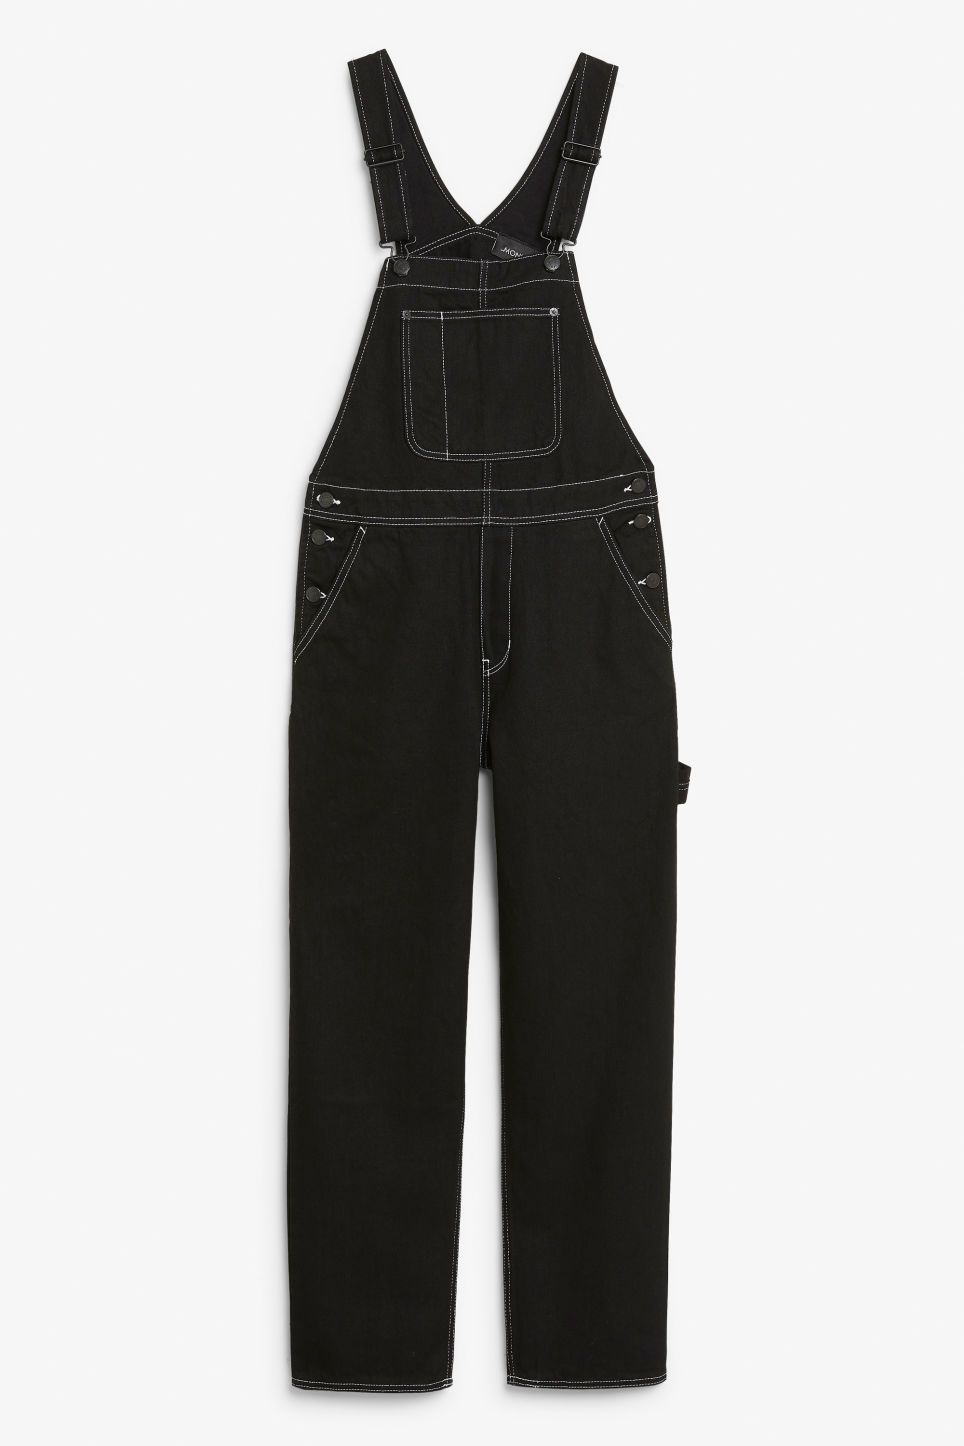 2d779c3ab5 Monki denim dungarees in black - A pair of black dungarees featuring a fab  utility look